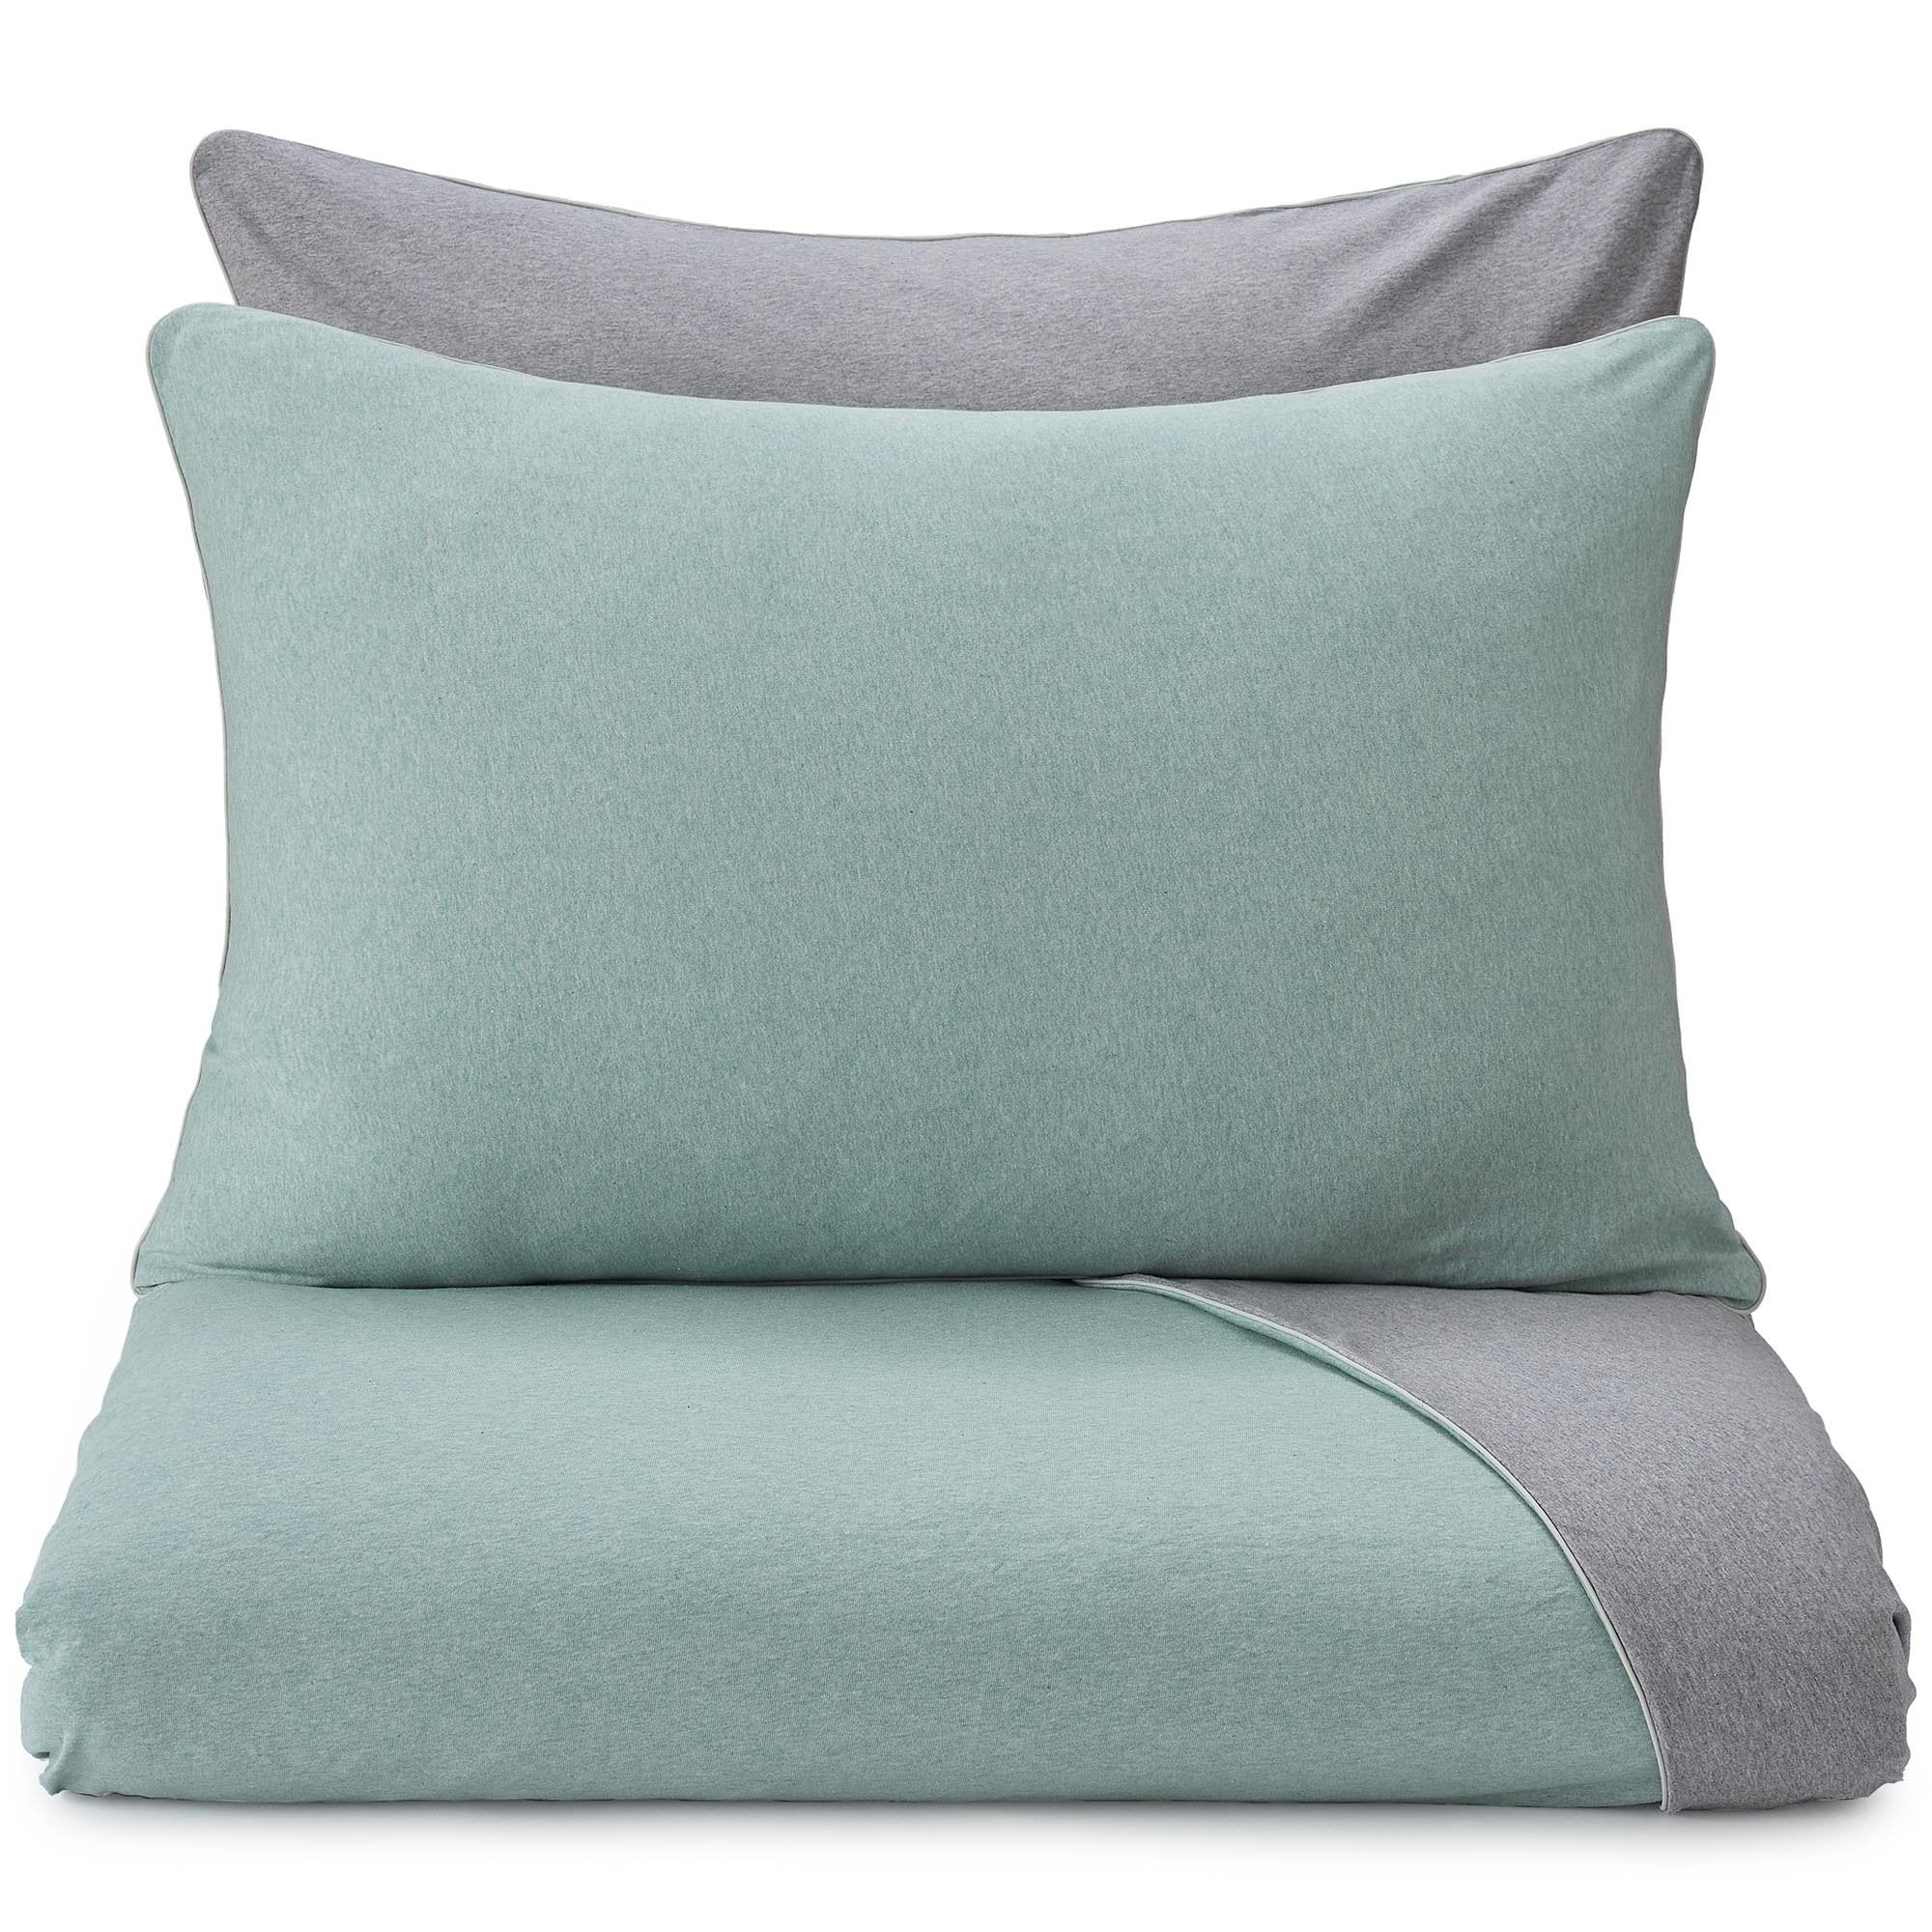 Coria duvet cover, light grey green melange & grey melange & grey, 100% cotton